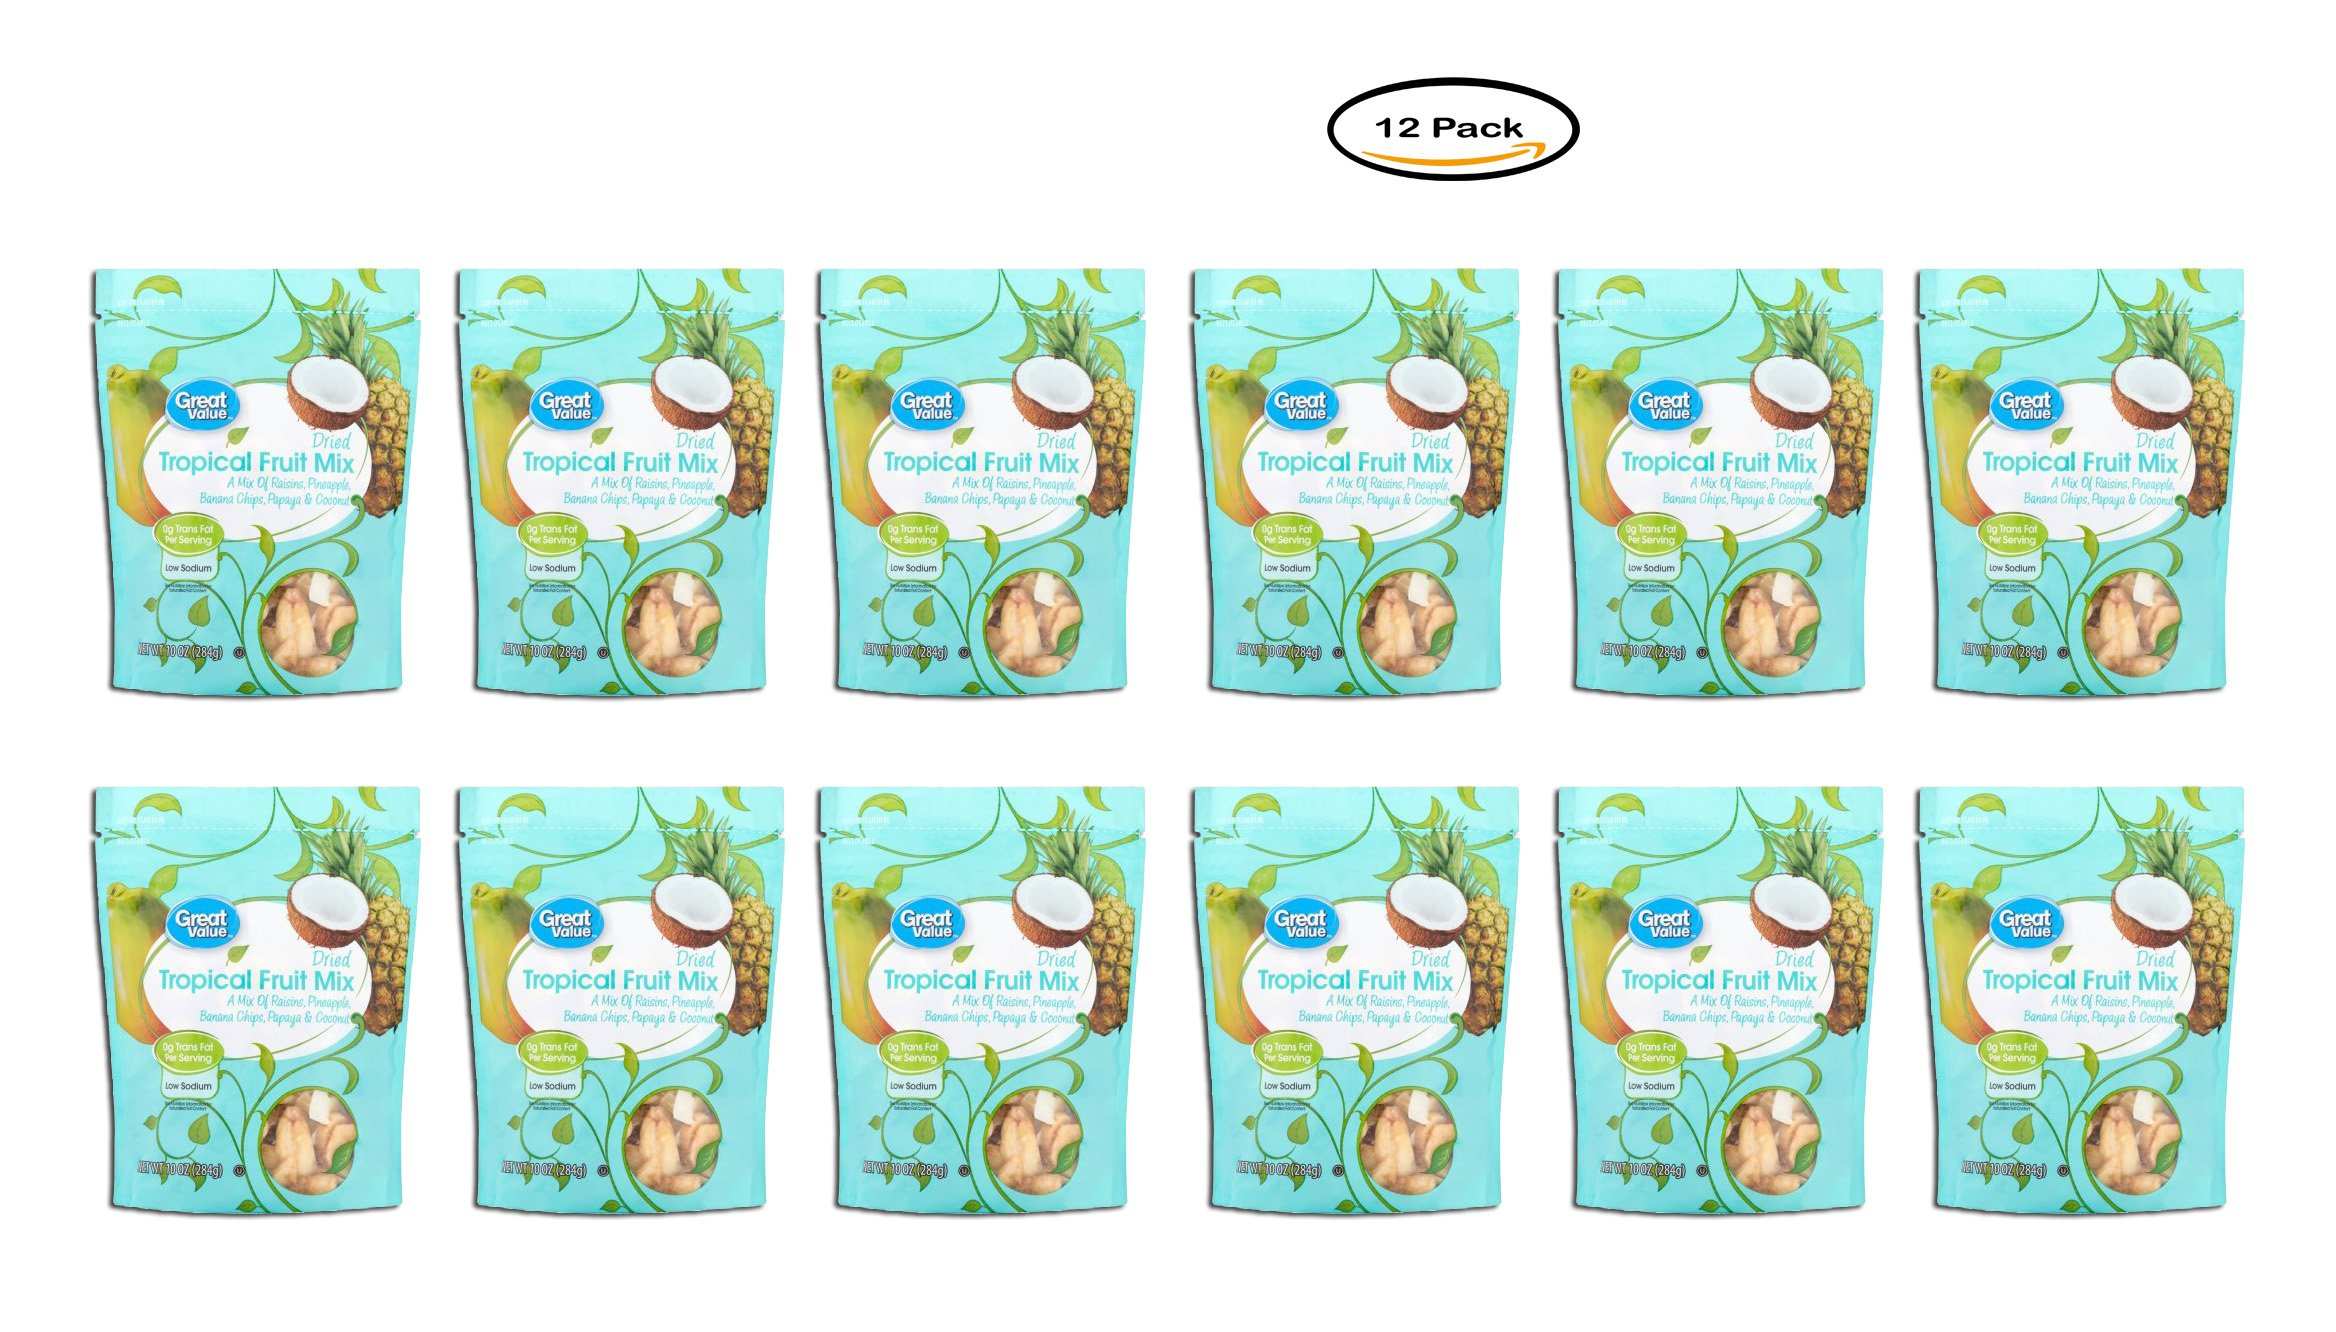 PACK OF 12 - Great Value Dried Tropical Fruit Mix, 10 oz